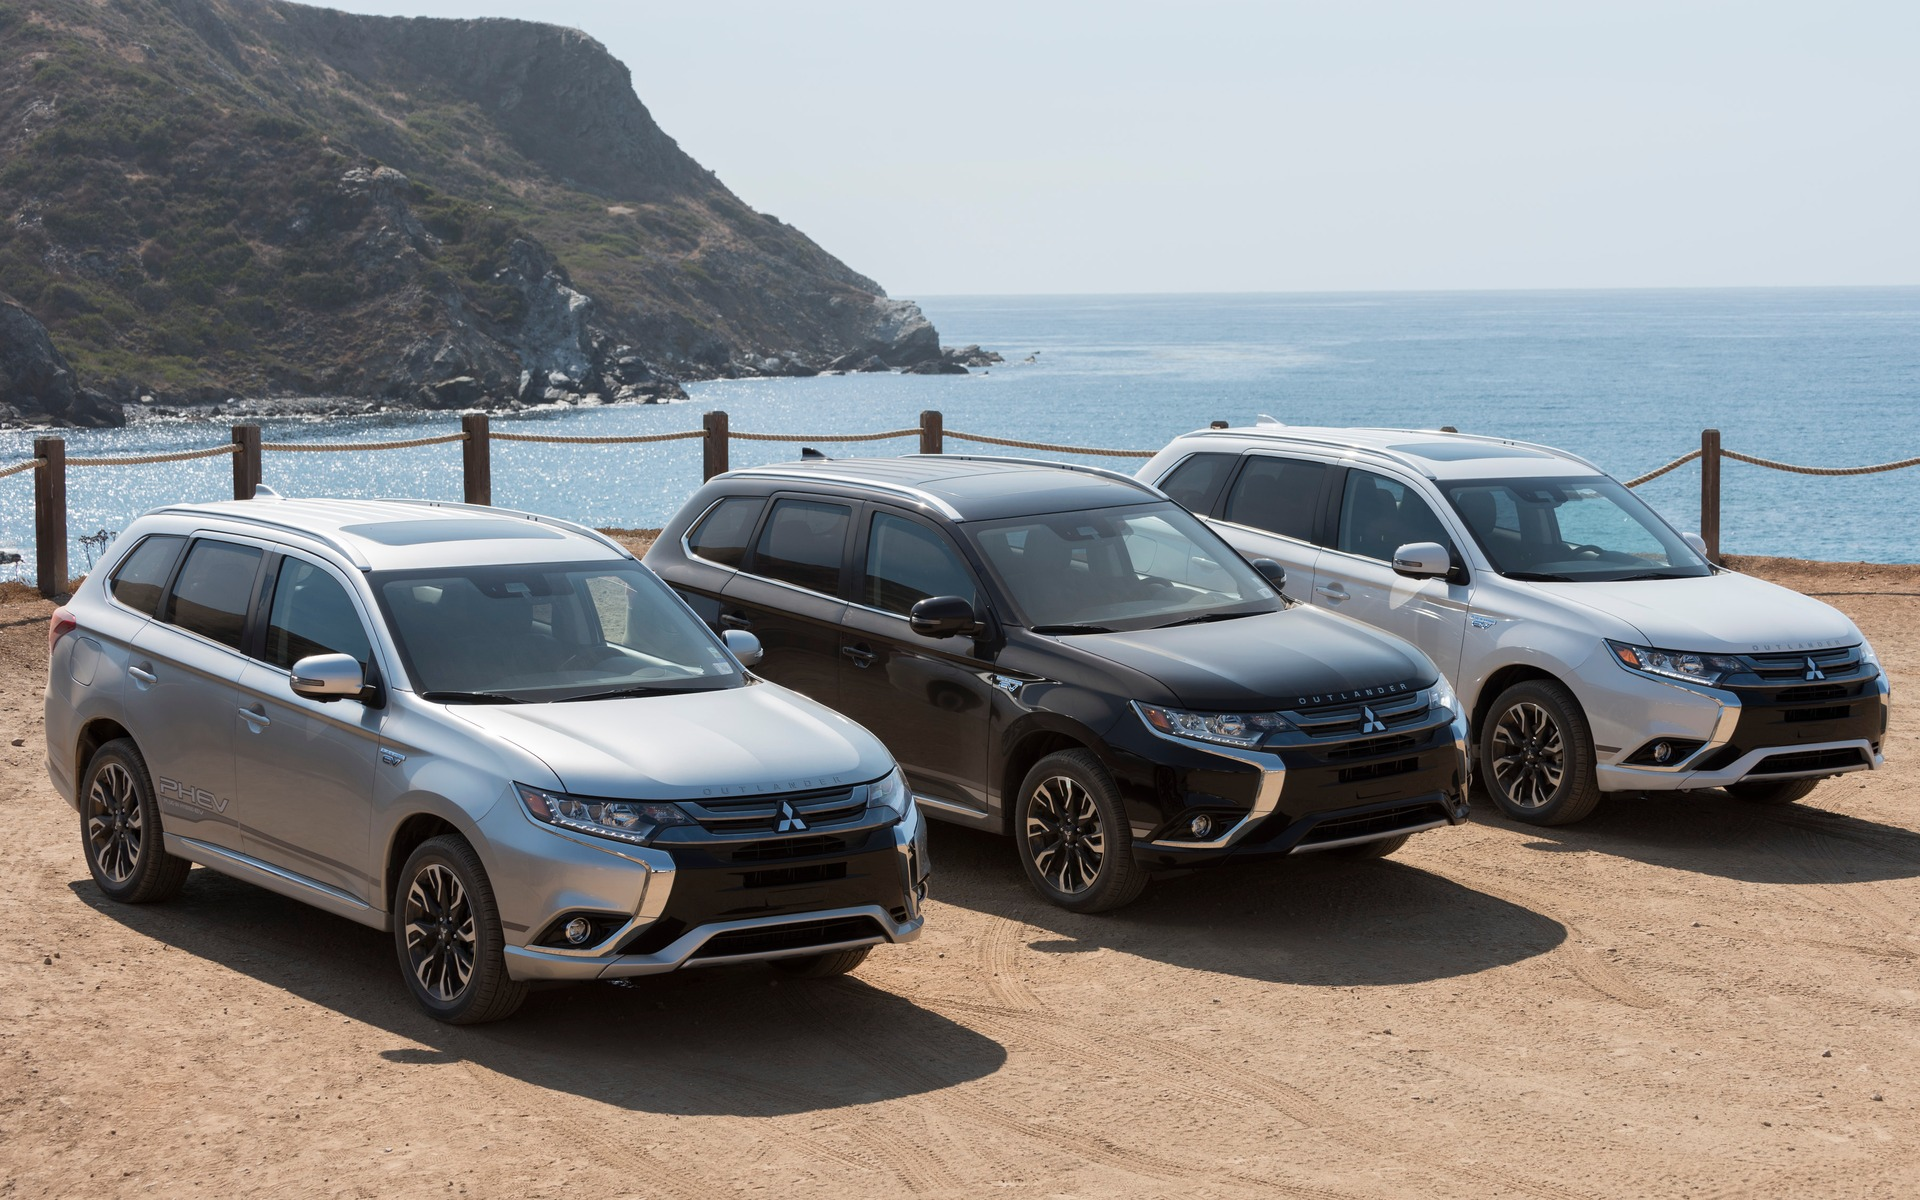 2018 Outlander Phev >> Best New-Vehicle Warranties in 2018 - 1/13